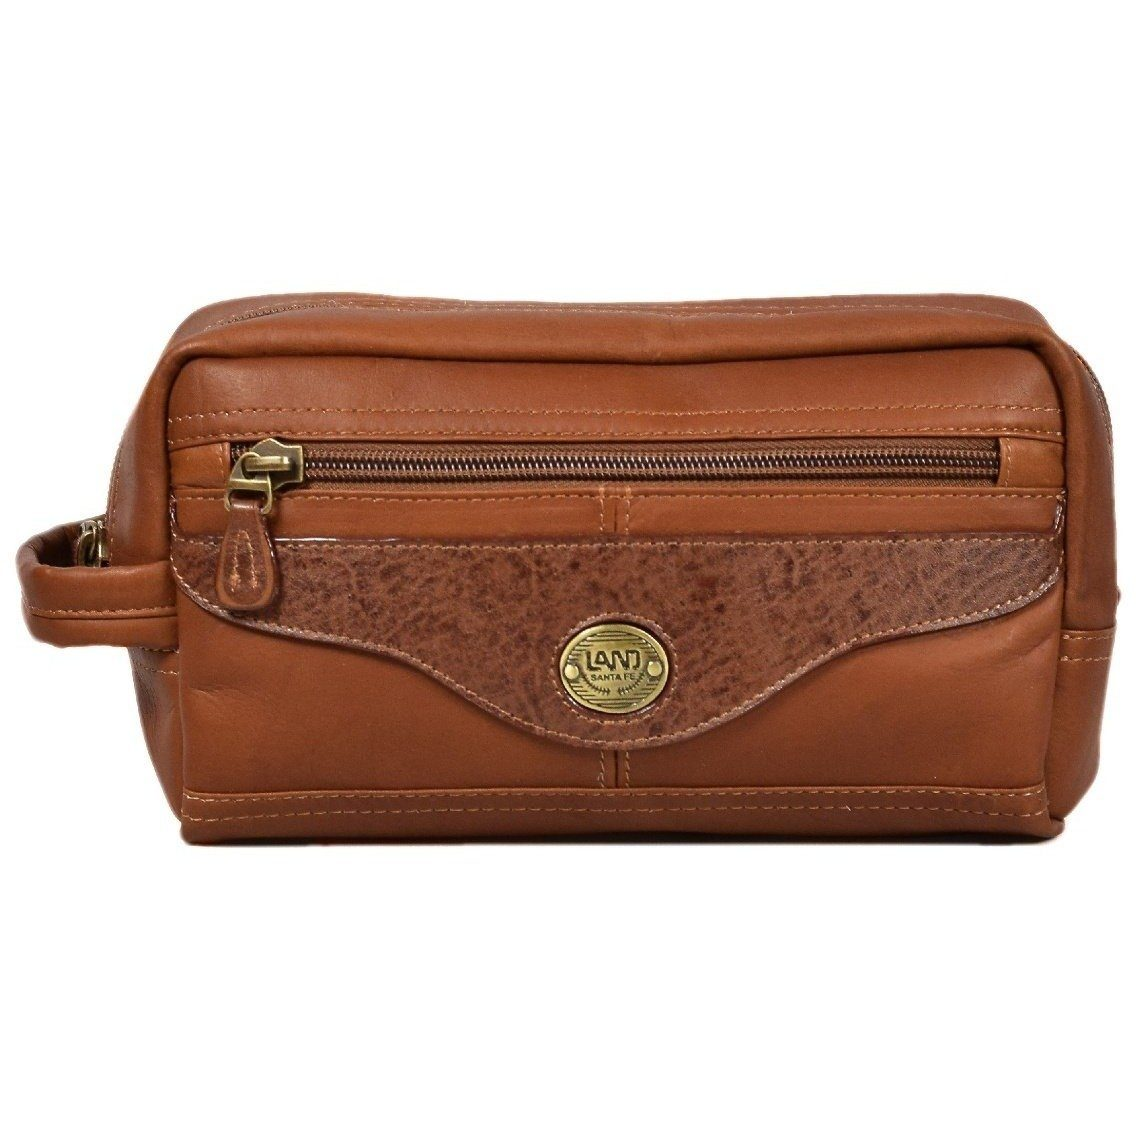 Santa Fe Dopp Kit, Toiletry Bag | LAND Leather